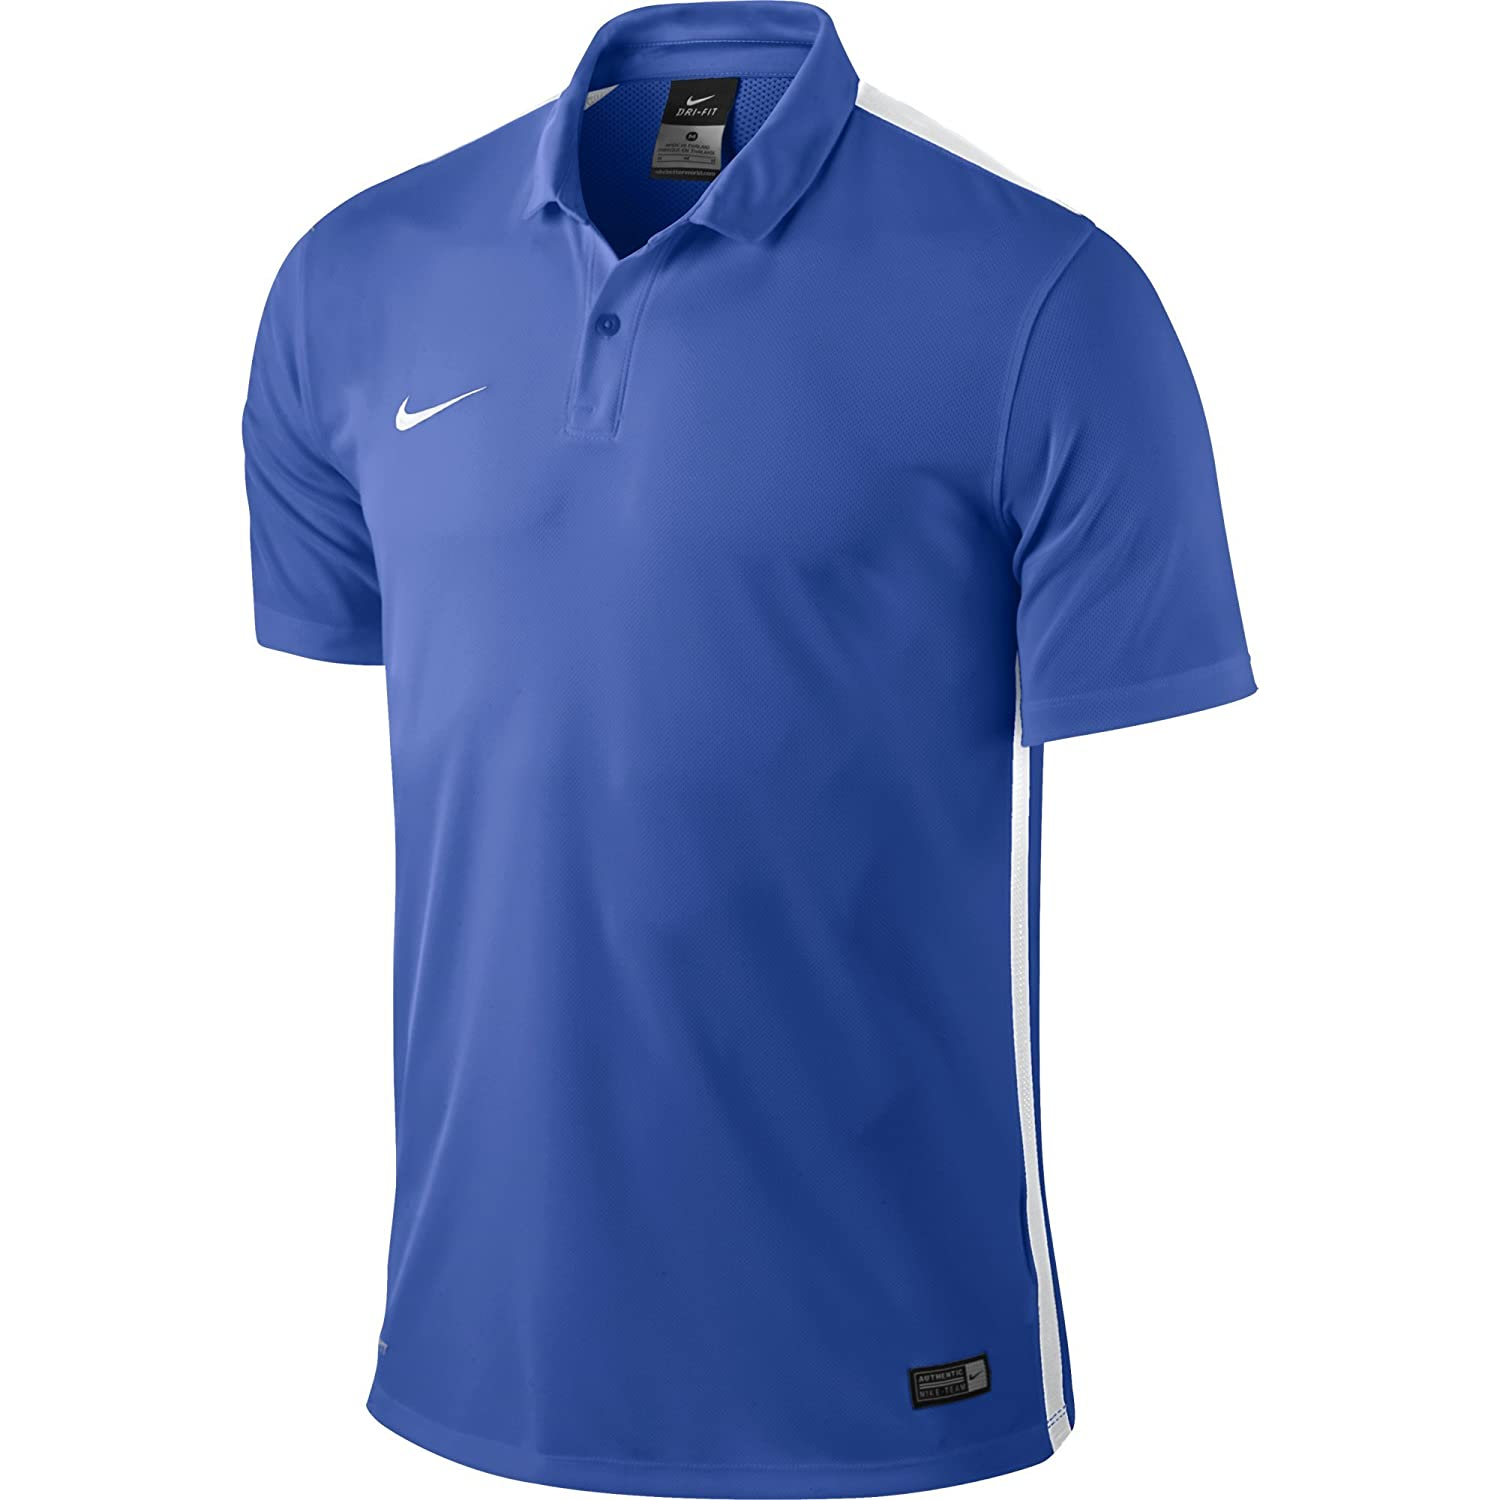 24f75d8a8c3 Nike Jersey Short Sleeve Challenge Top  Amazon.co.uk  Sports   Outdoors